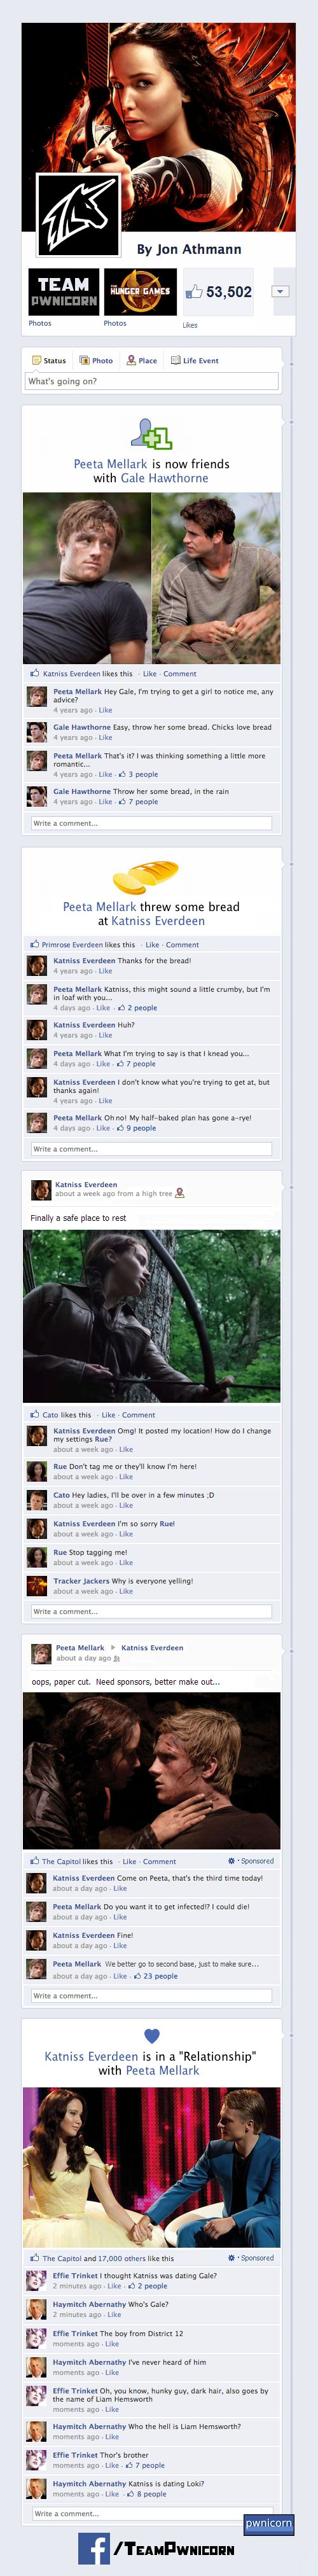 "What If... The Hunger Games Characters Were On Facebook? My fave is Haymitch's last comment: ""katniss is dating loki?"""